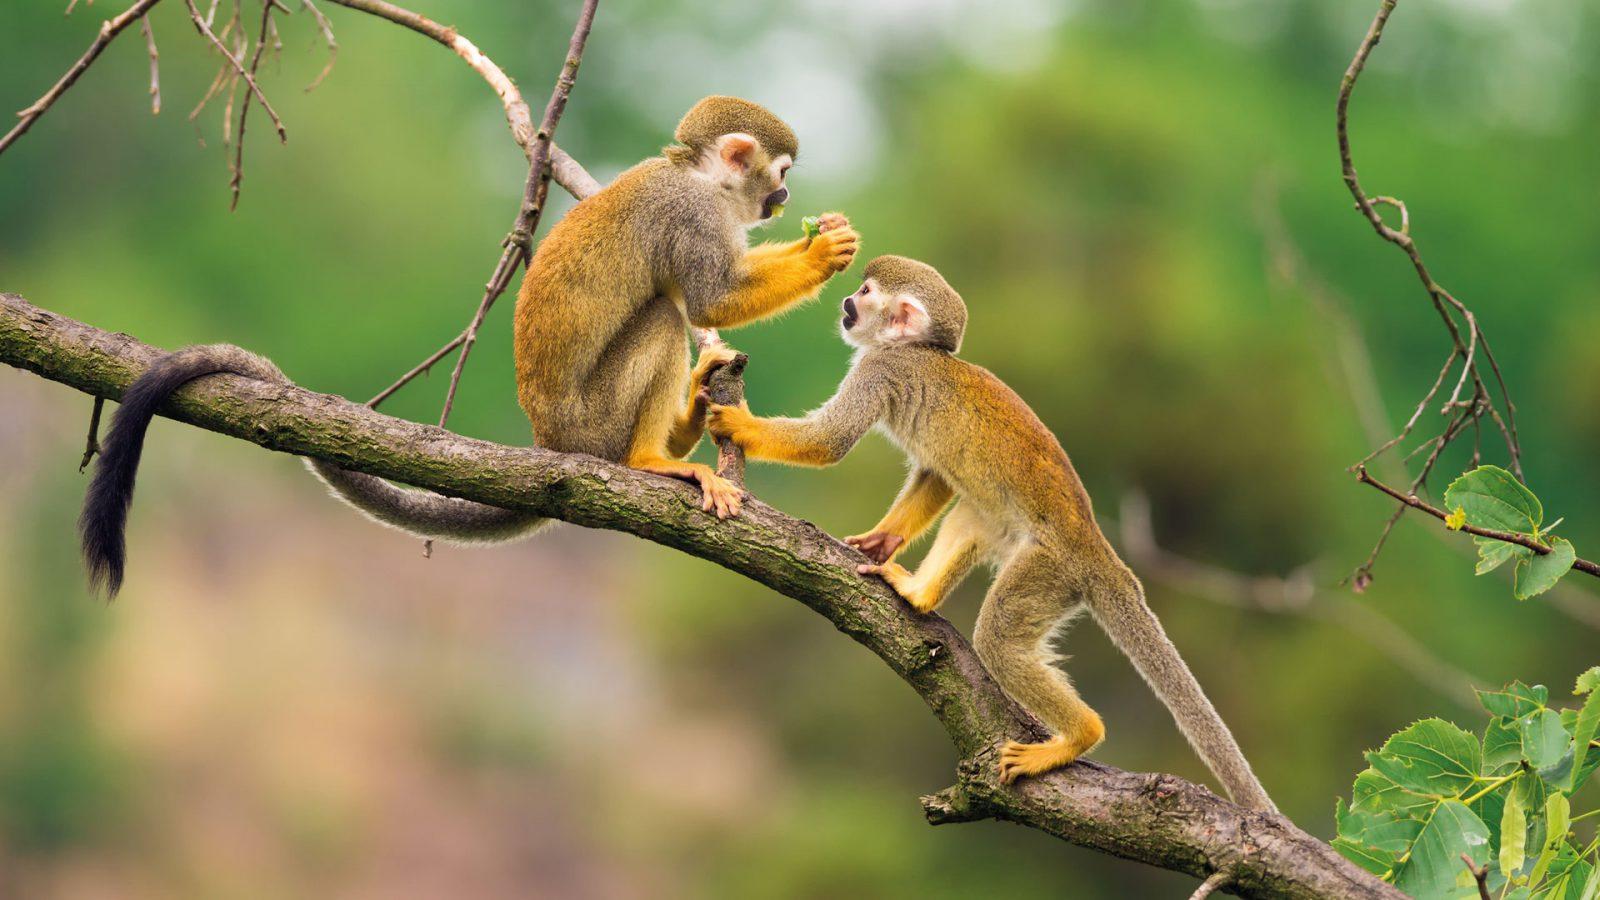 Visit the Monkey Island and admire the monkeys